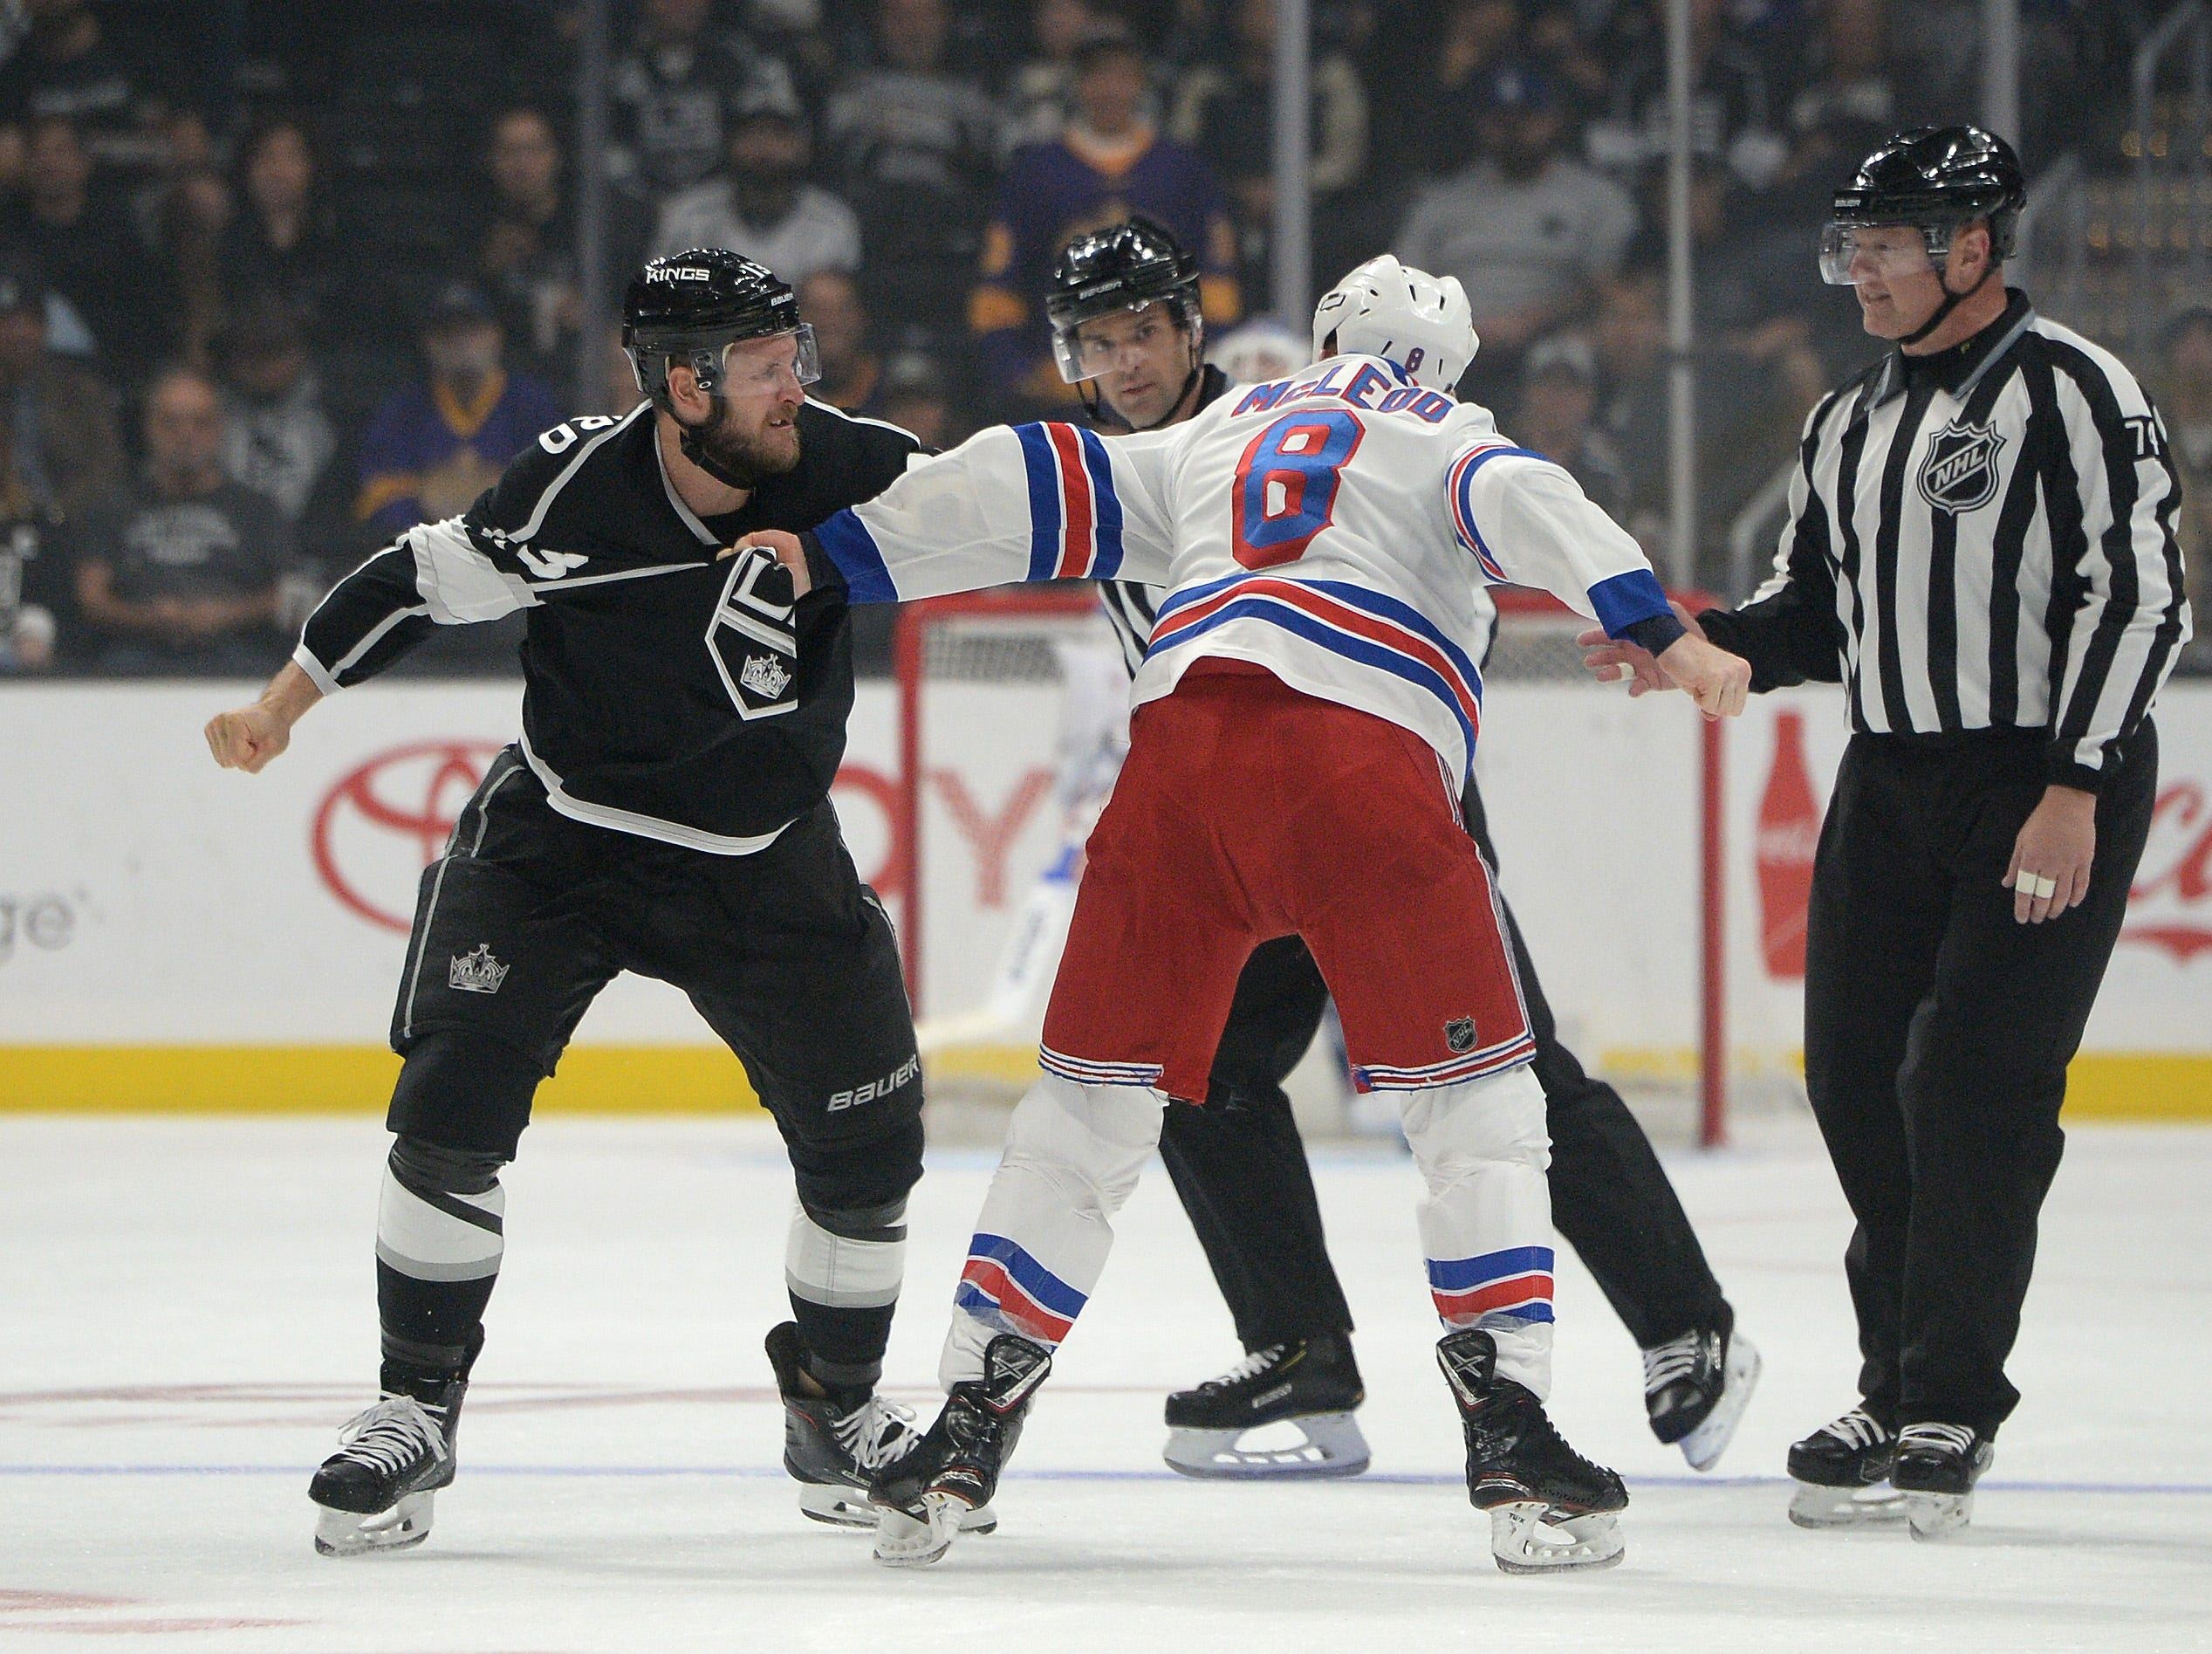 Oct. 28: Los Angeles Kings' Kyle Clifford vs. New York Rangers' Cody McLeod.